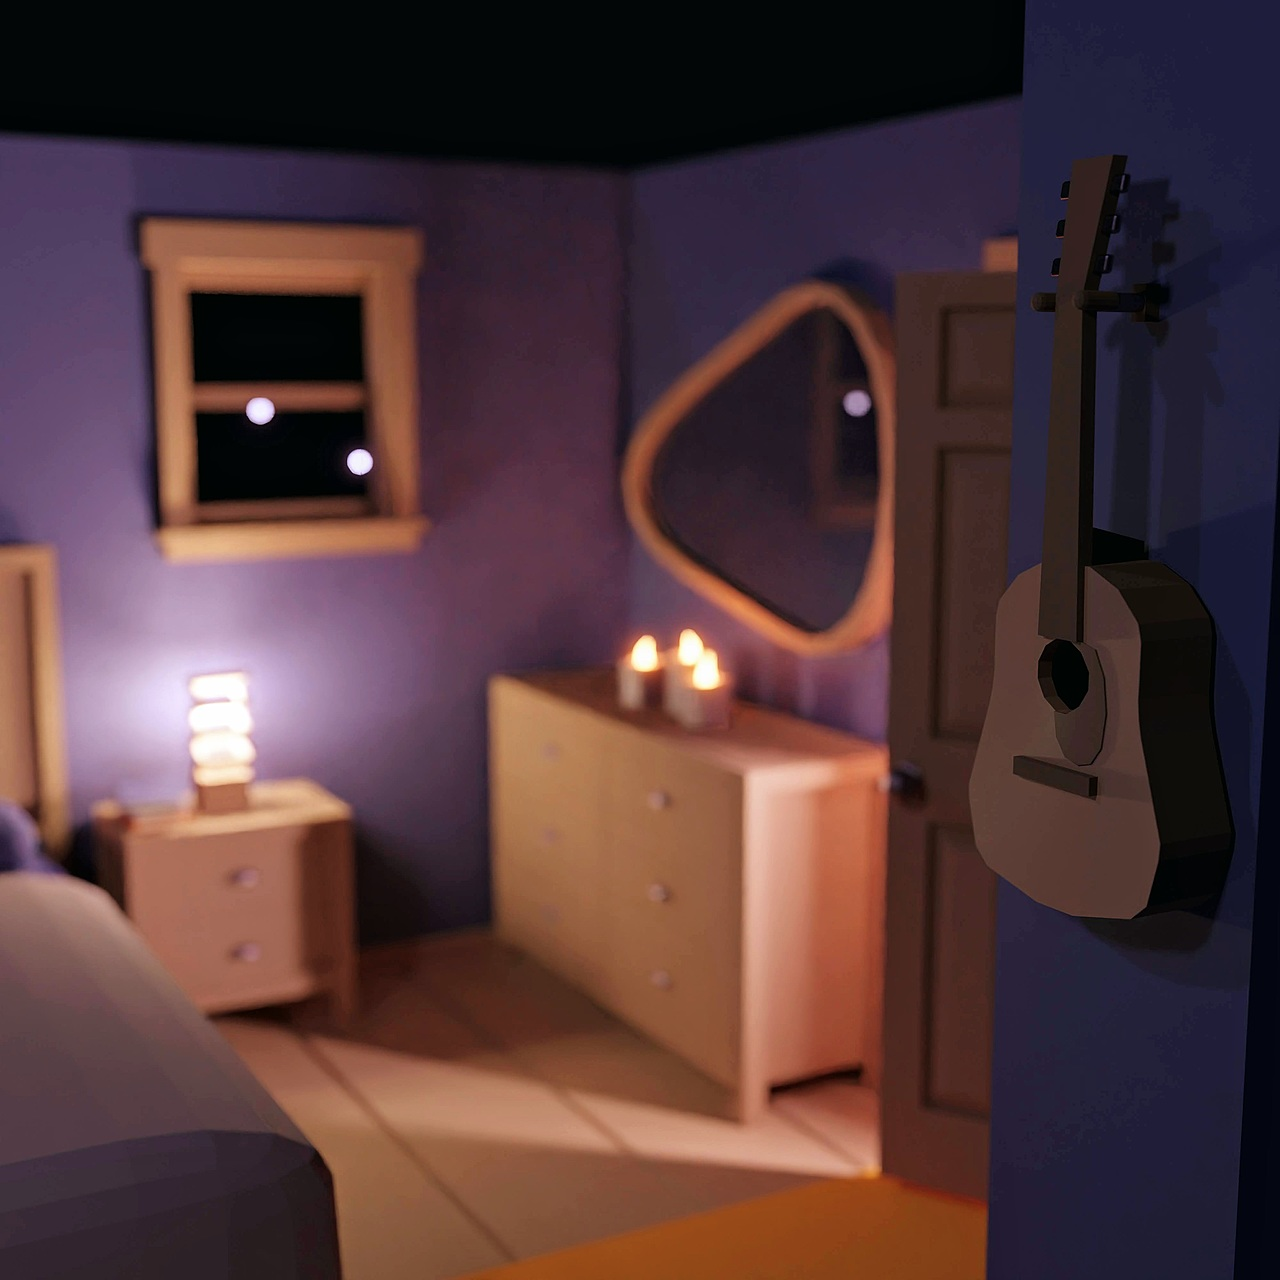 3D Modeling Exercise: Low Poly Room